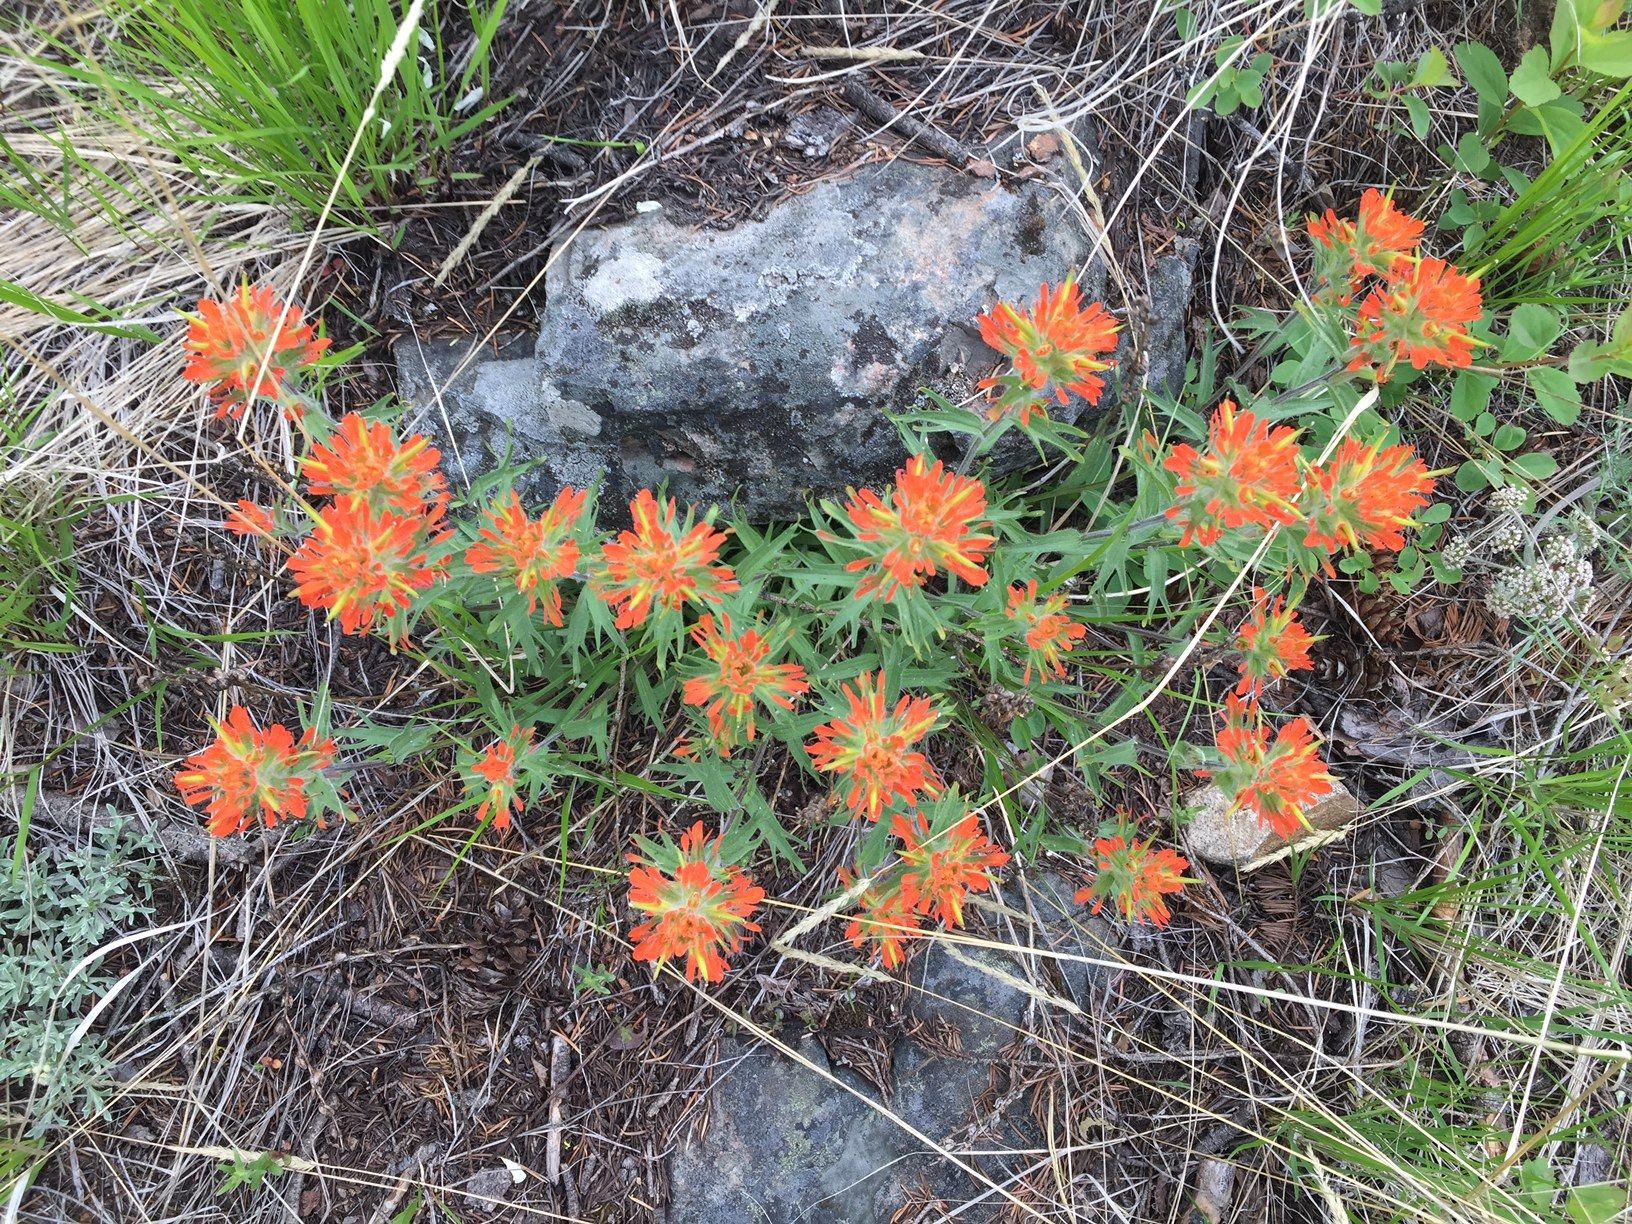 Orange wildflowers in the Okanagan Valley, British Columbia